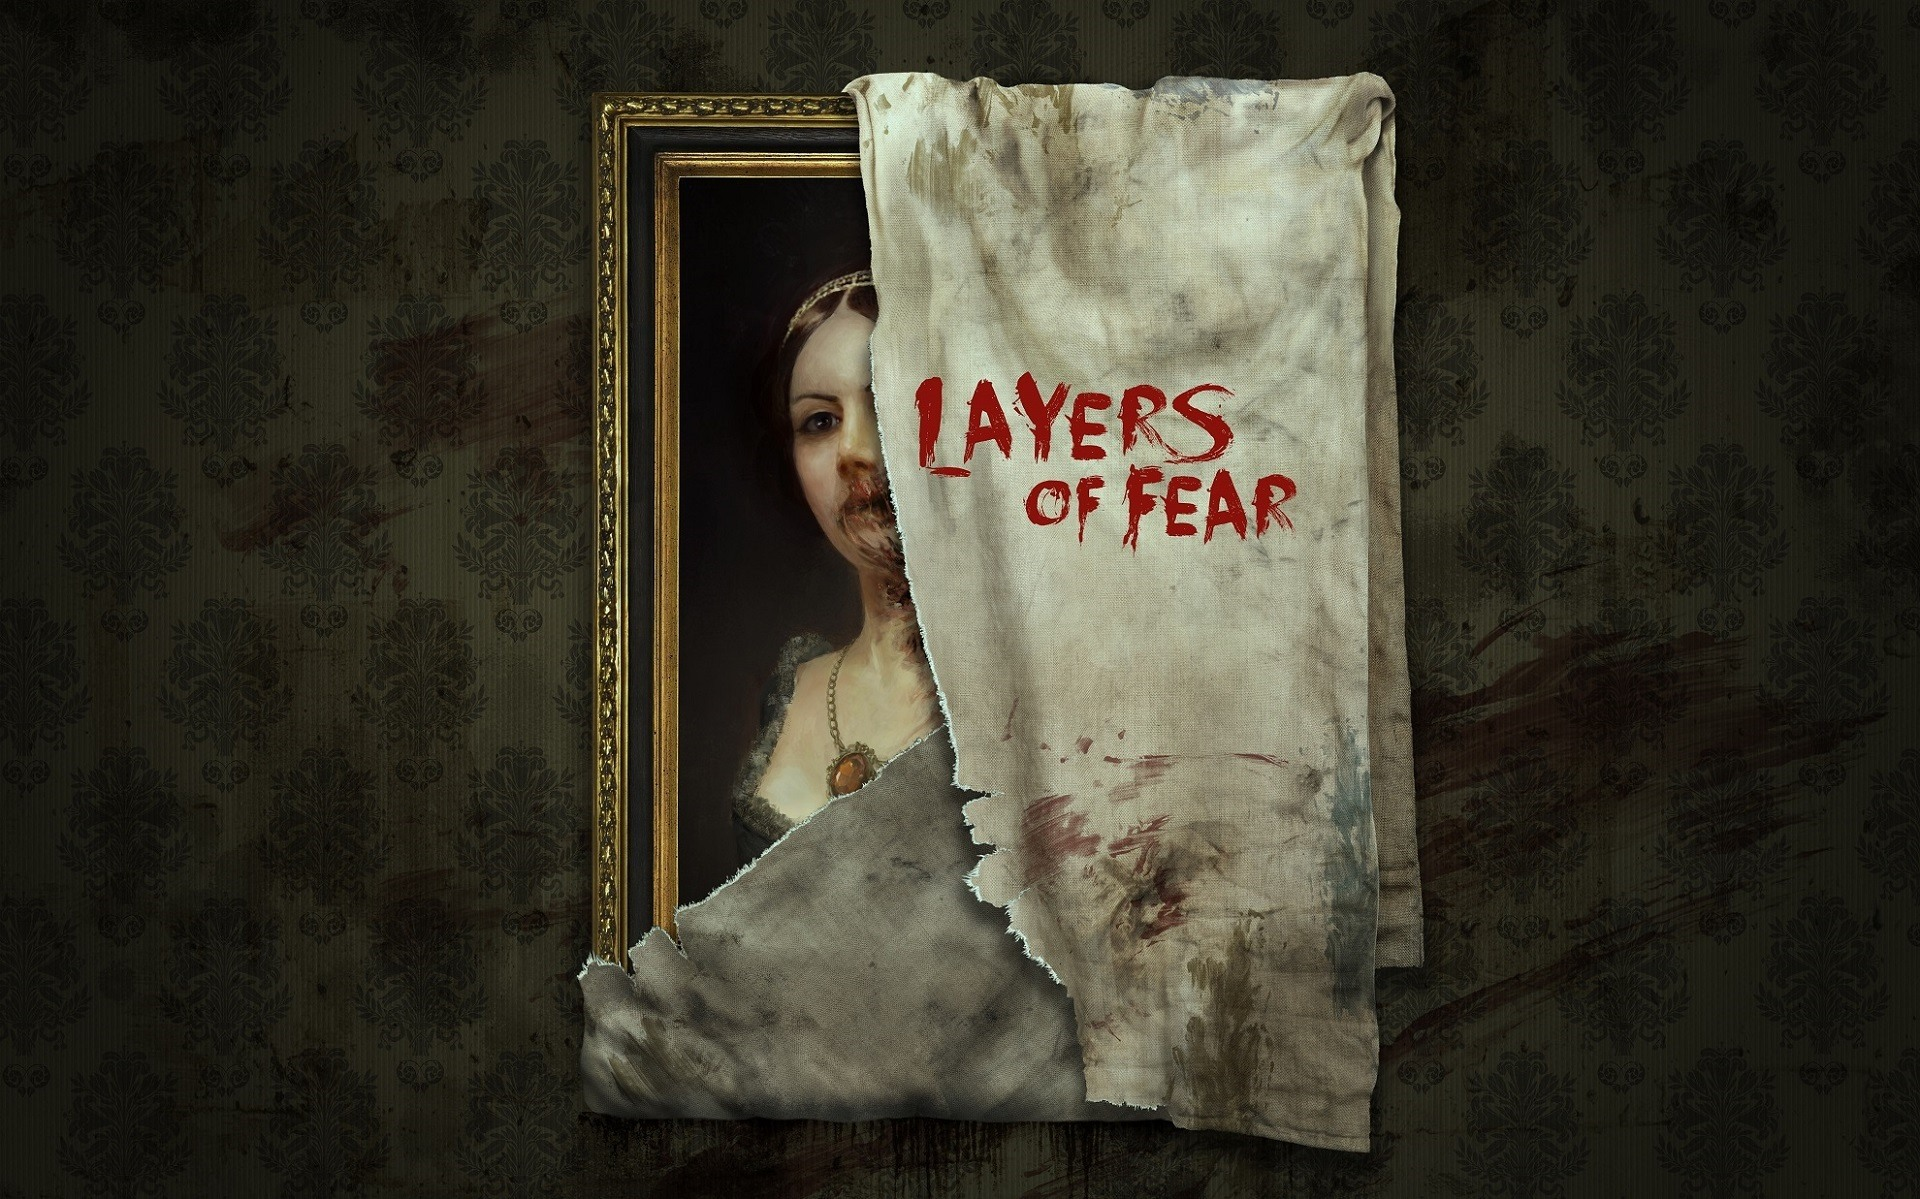 free games Epic Games Store Layers of Fear Q.U.B.E. 2